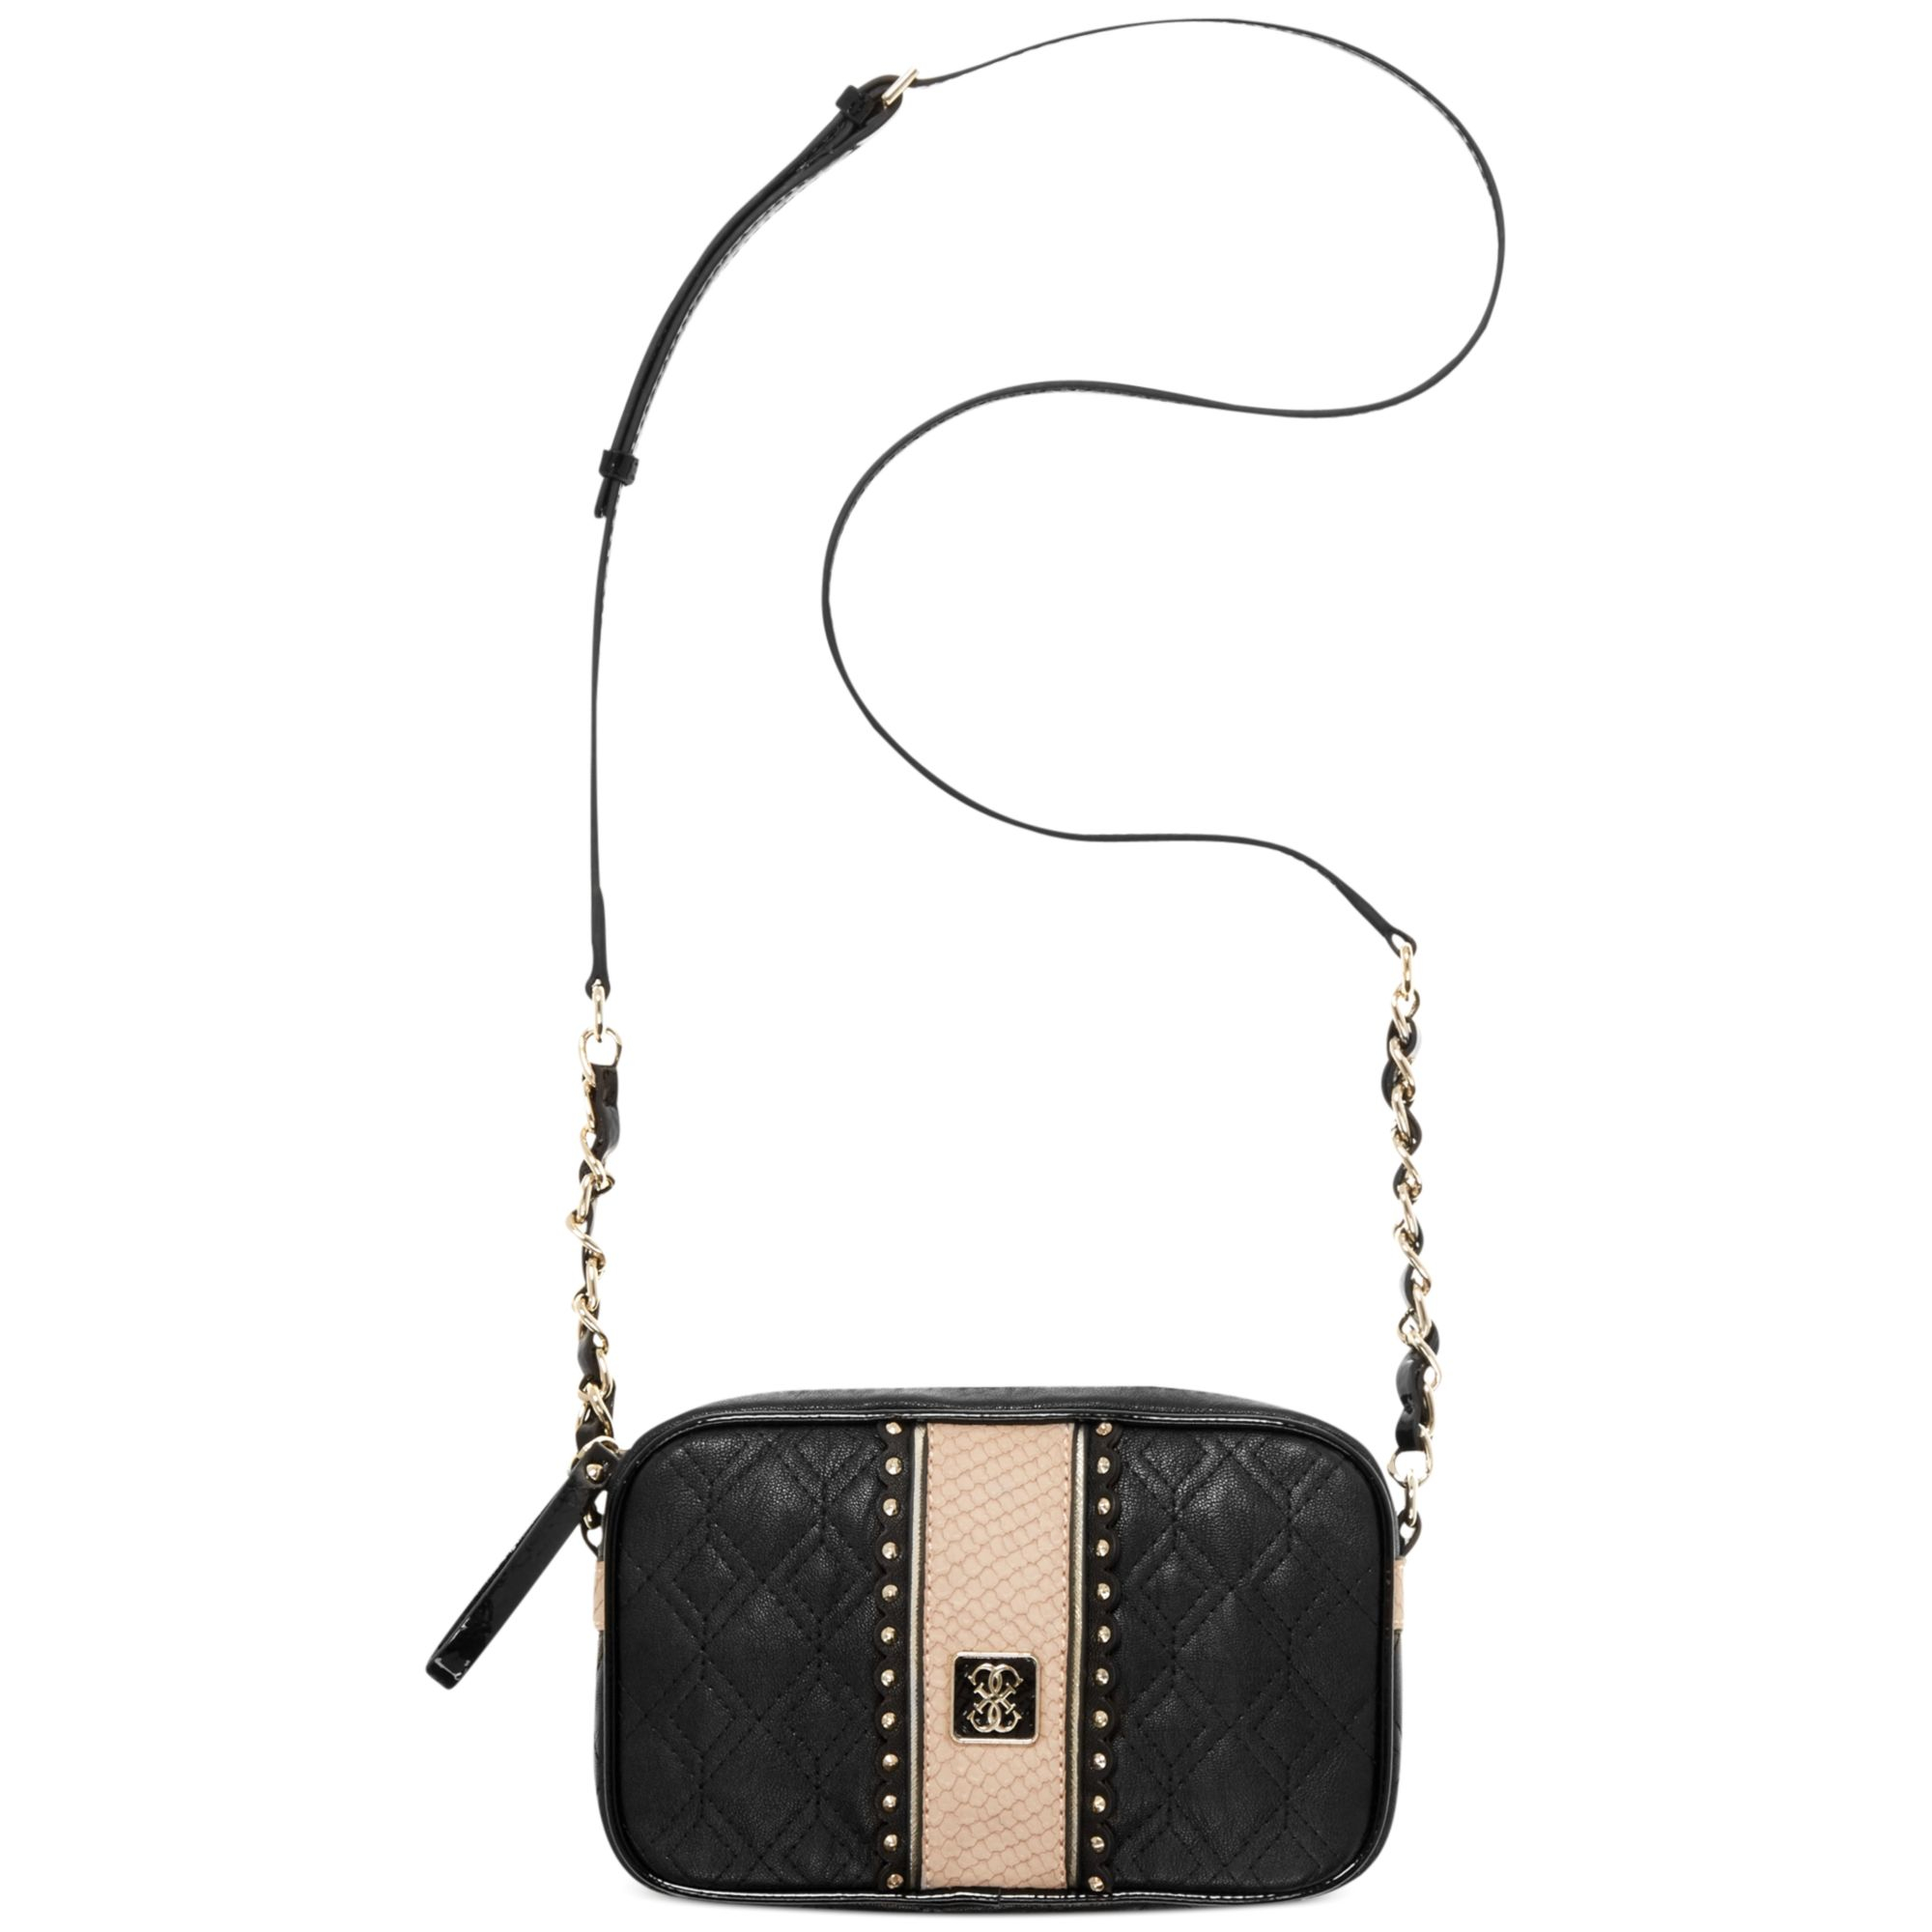 Guess Miss Social Petite Crossbody Camera Bag In Black | Lyst